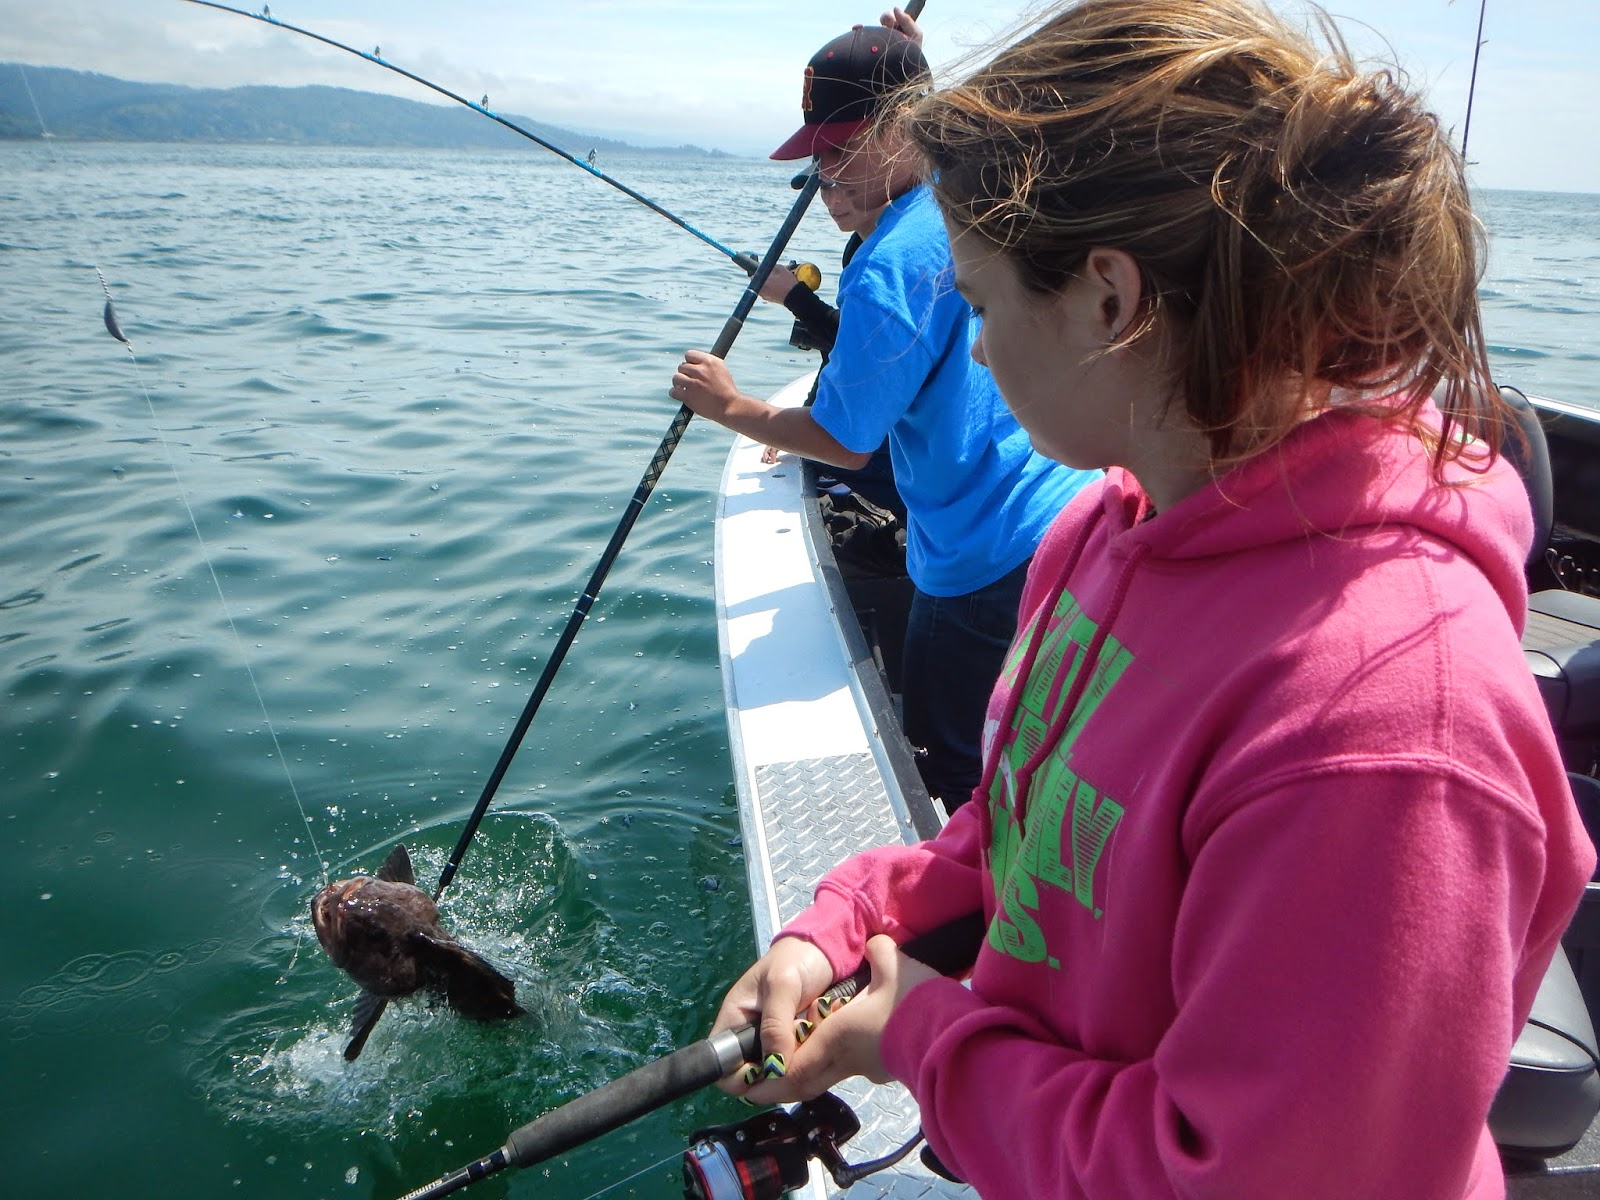 Brookings oregon fishing charters may 2015 for Fishing brookings oregon